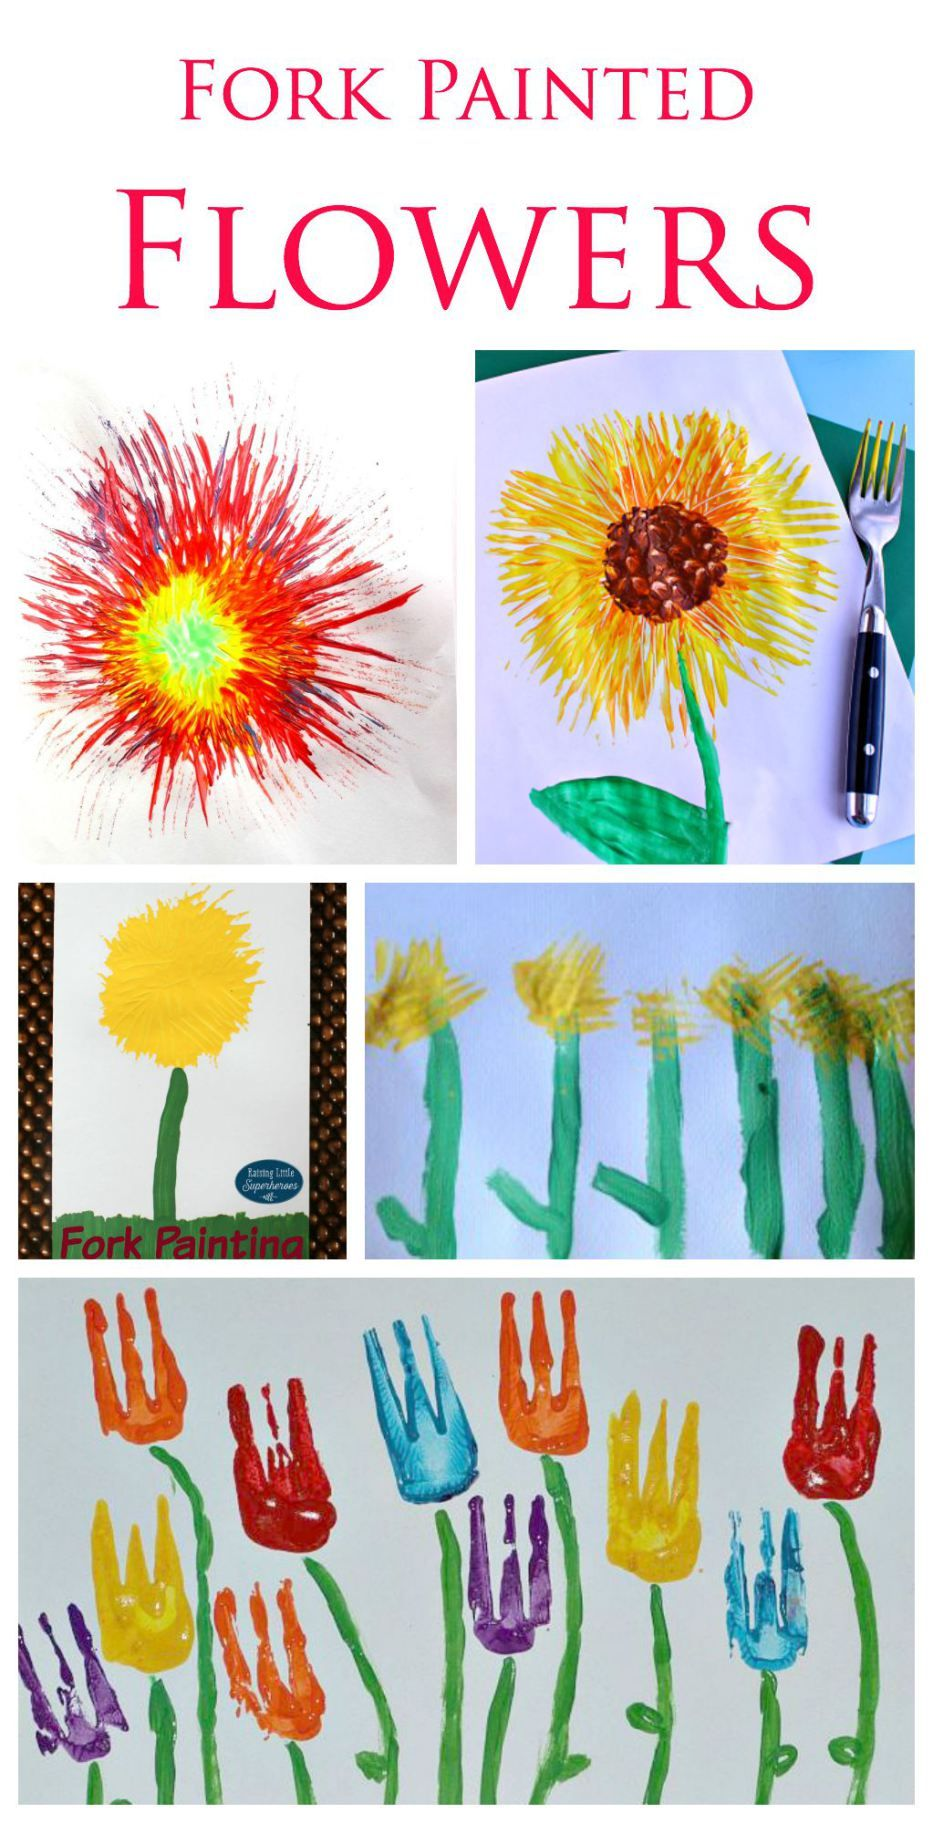 Fork Painted Flowers A Great Little Painting Technique For Kids